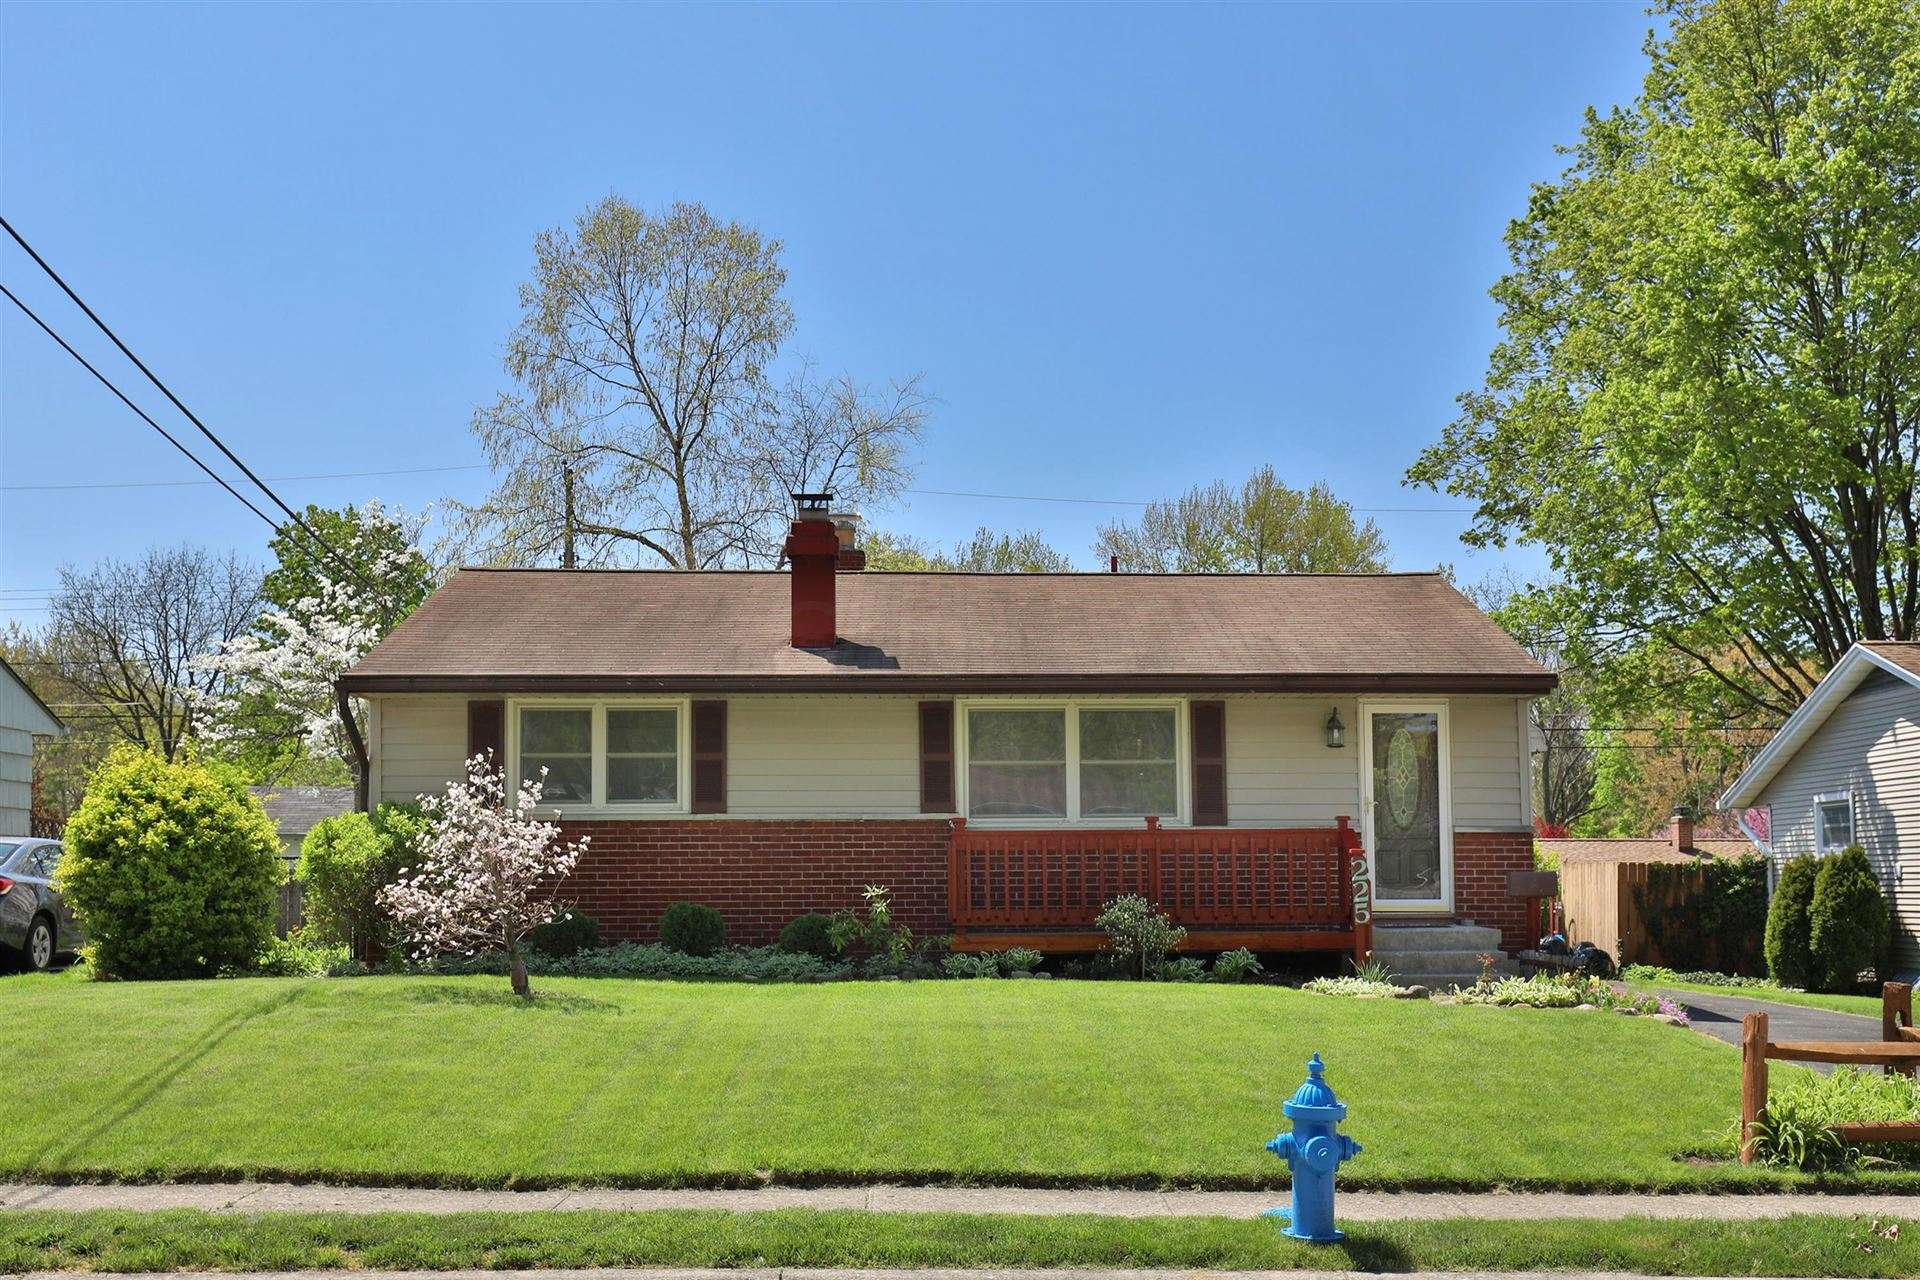 Photo of 225 E Clearview Avenue, Worthington, OH 43085 (MLS # 221013584)